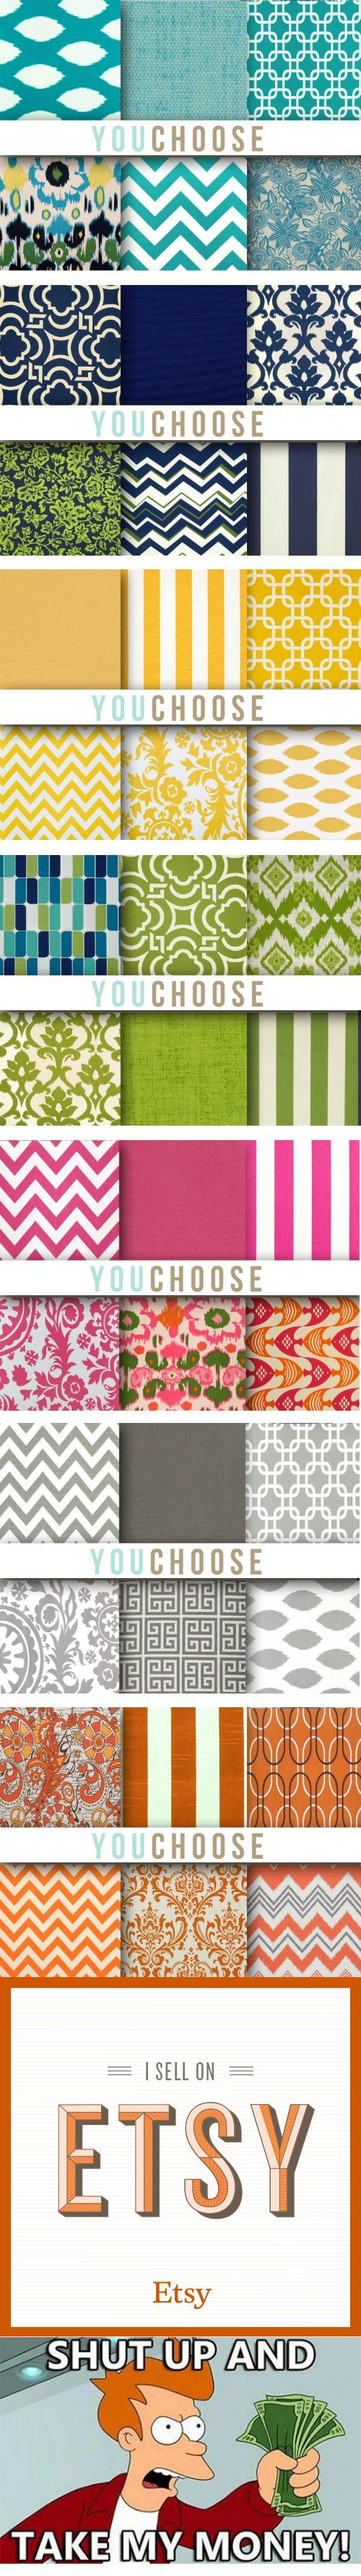 great inspiration for mixing fabrics